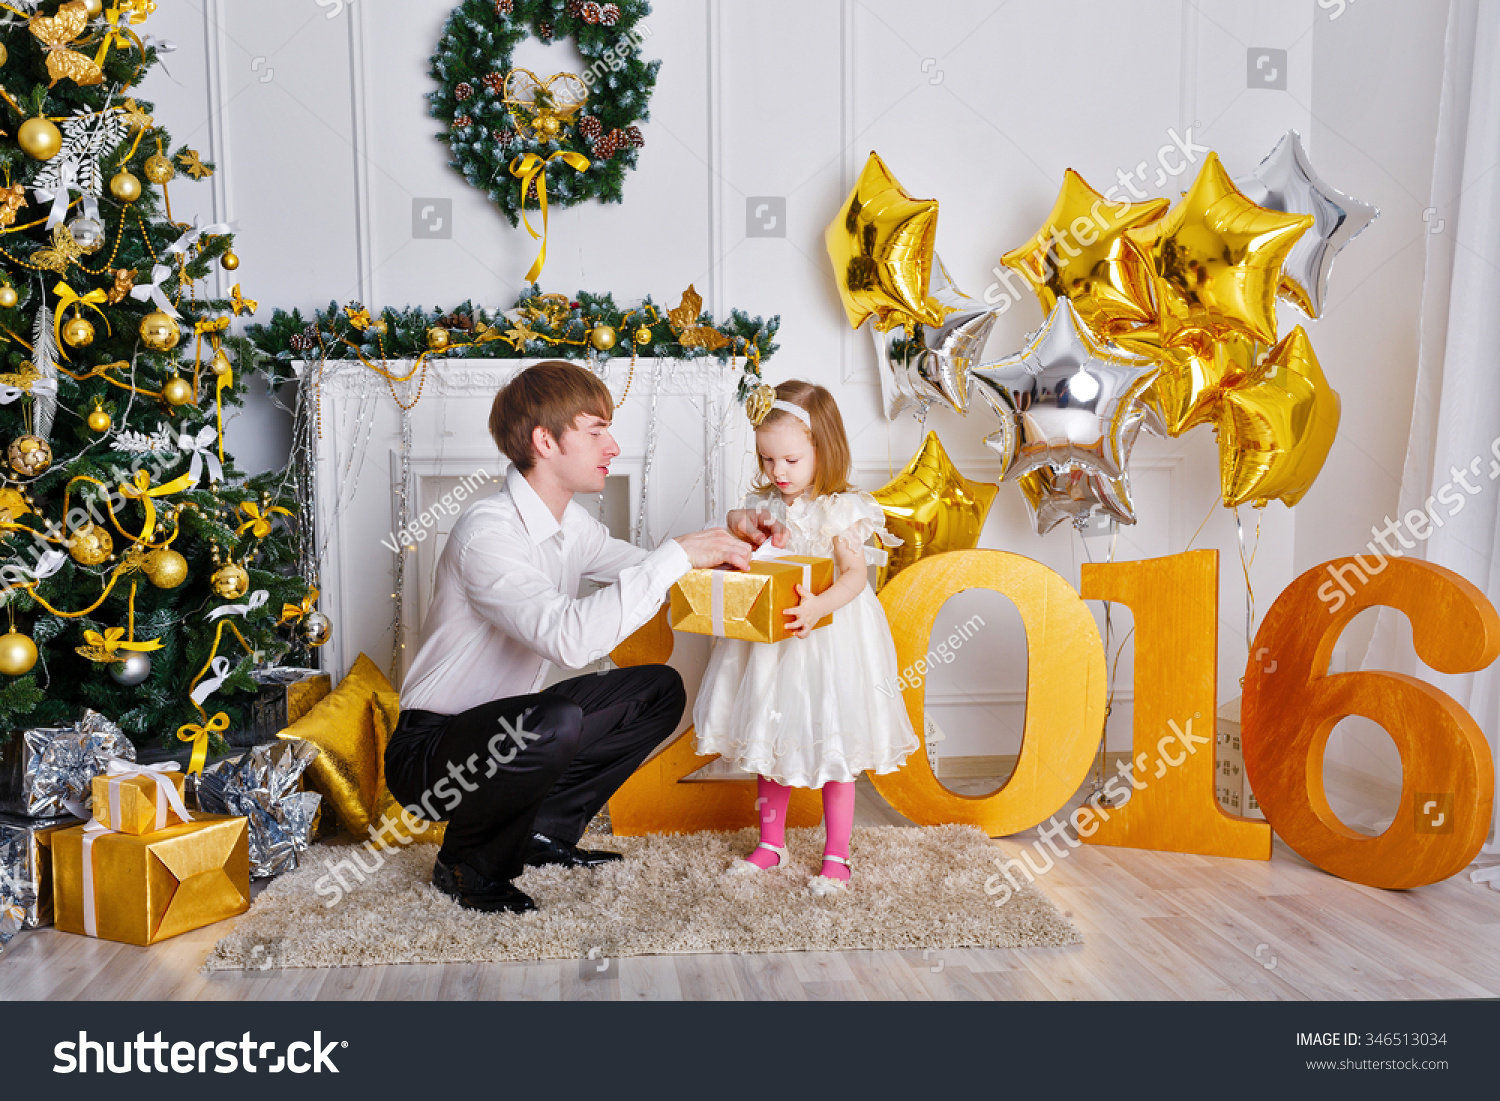 Father gives his daughter a gift for the New Year 2016 The concept of celebration and fun Family happiness Childhood